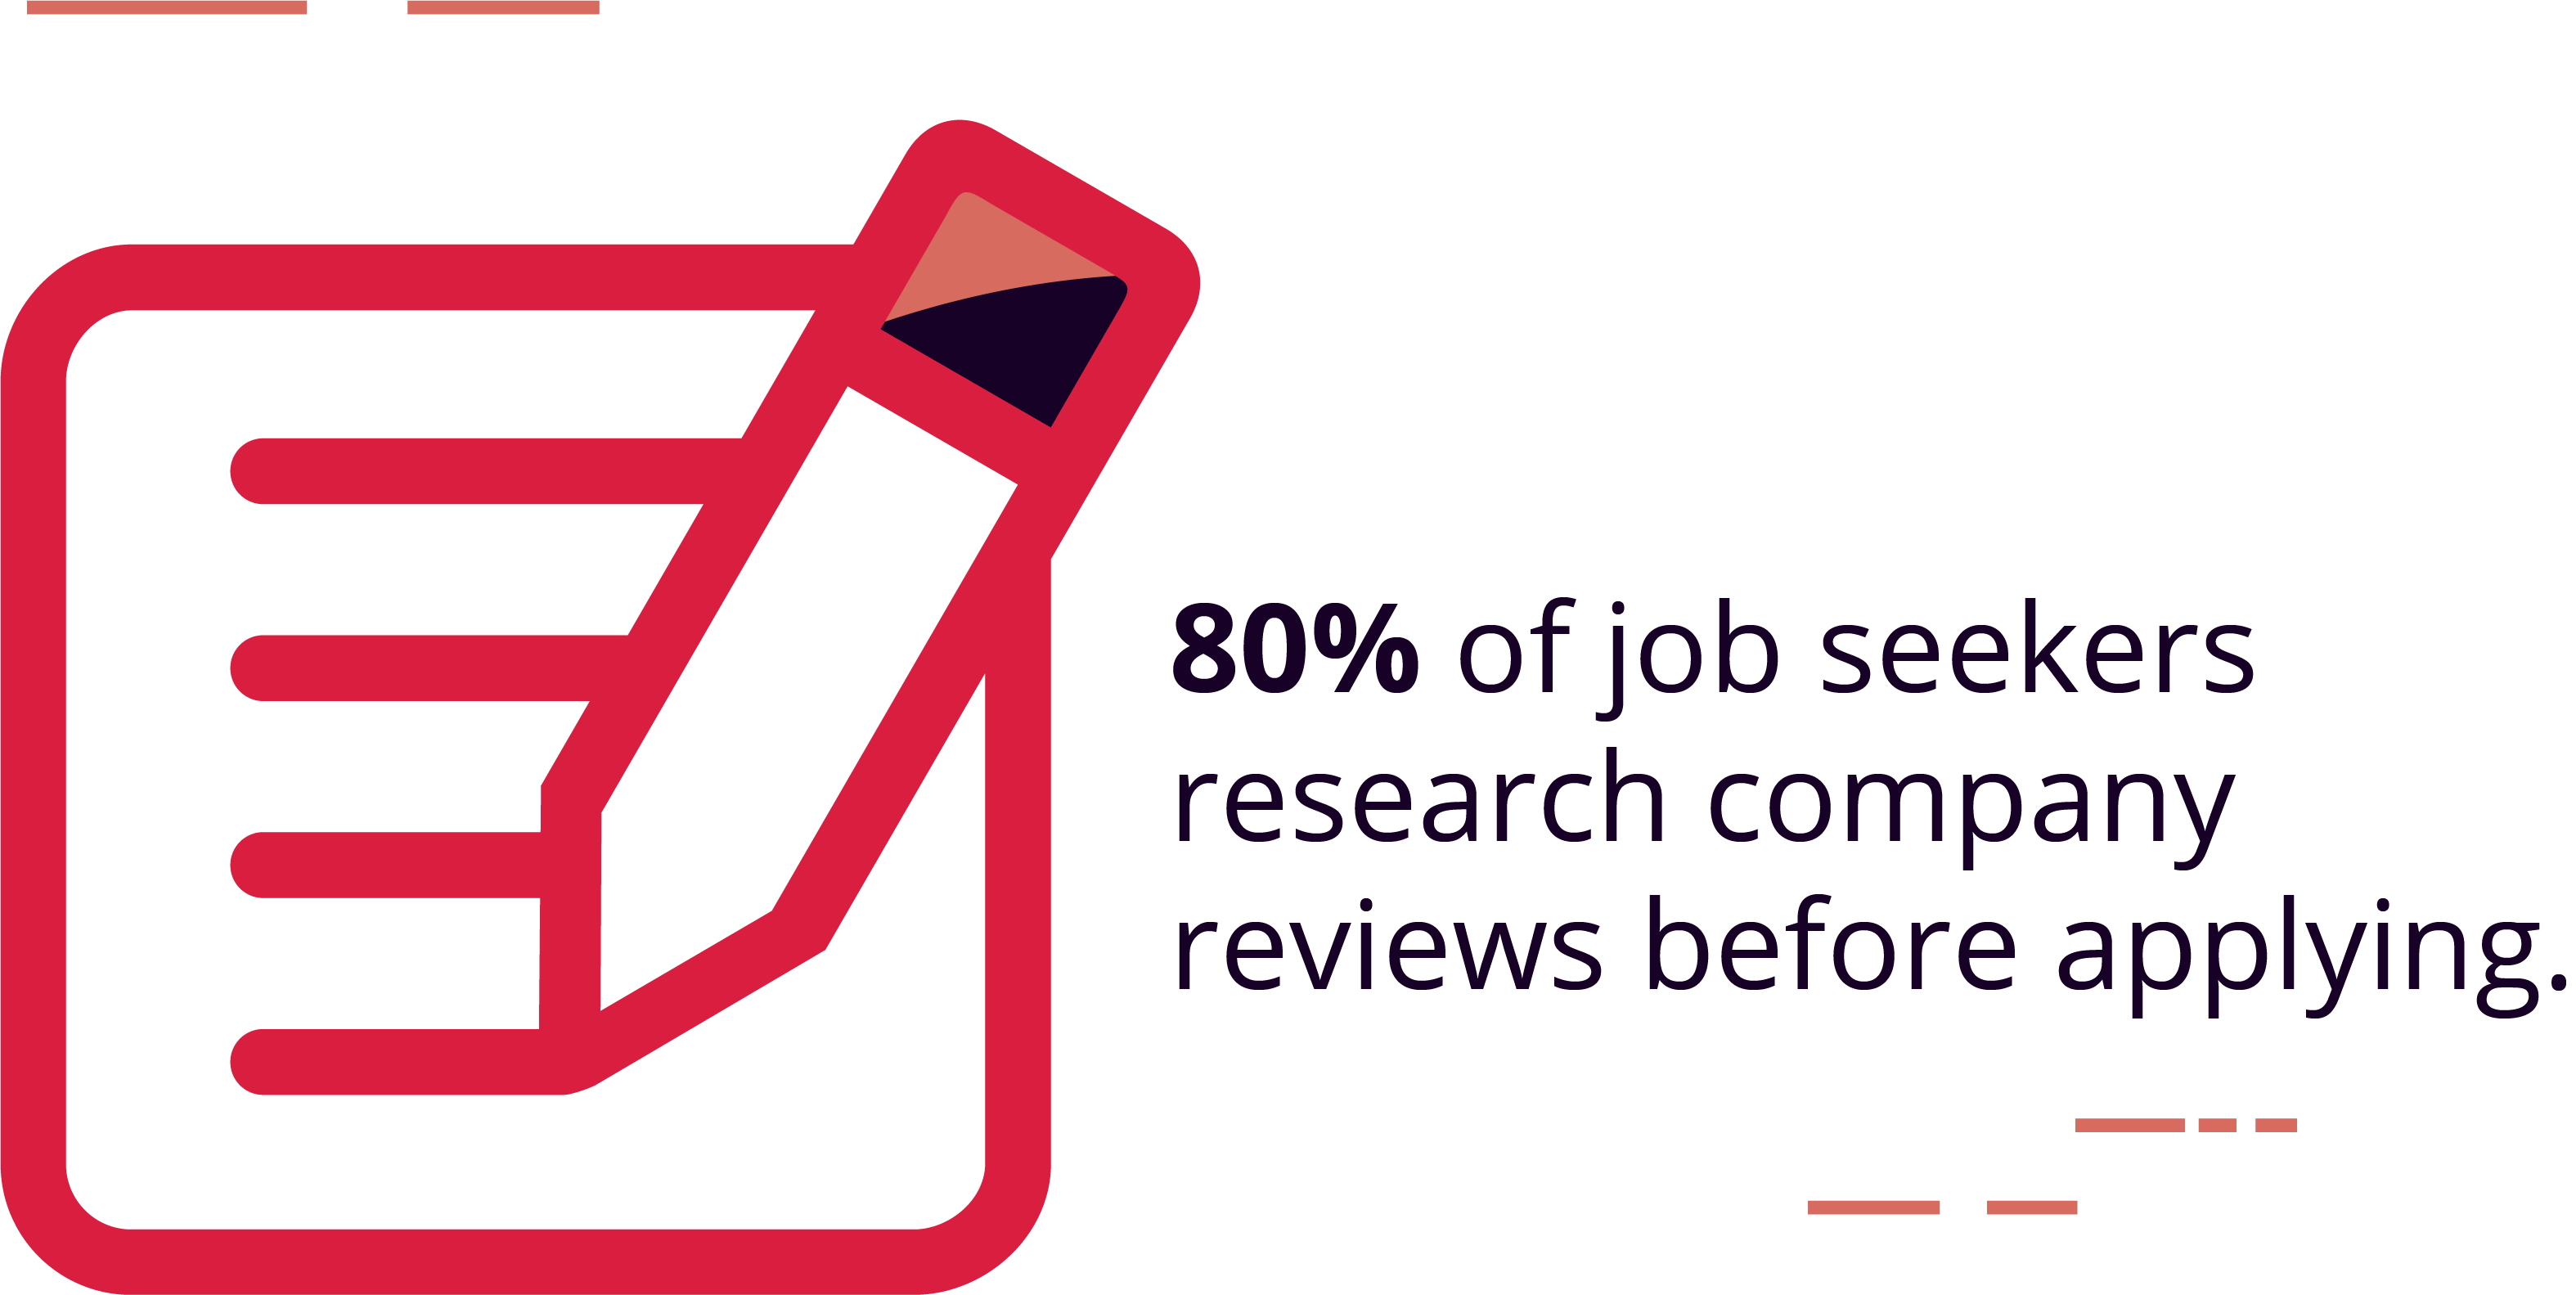 80% of job seekers research company reviews before deciding to apply